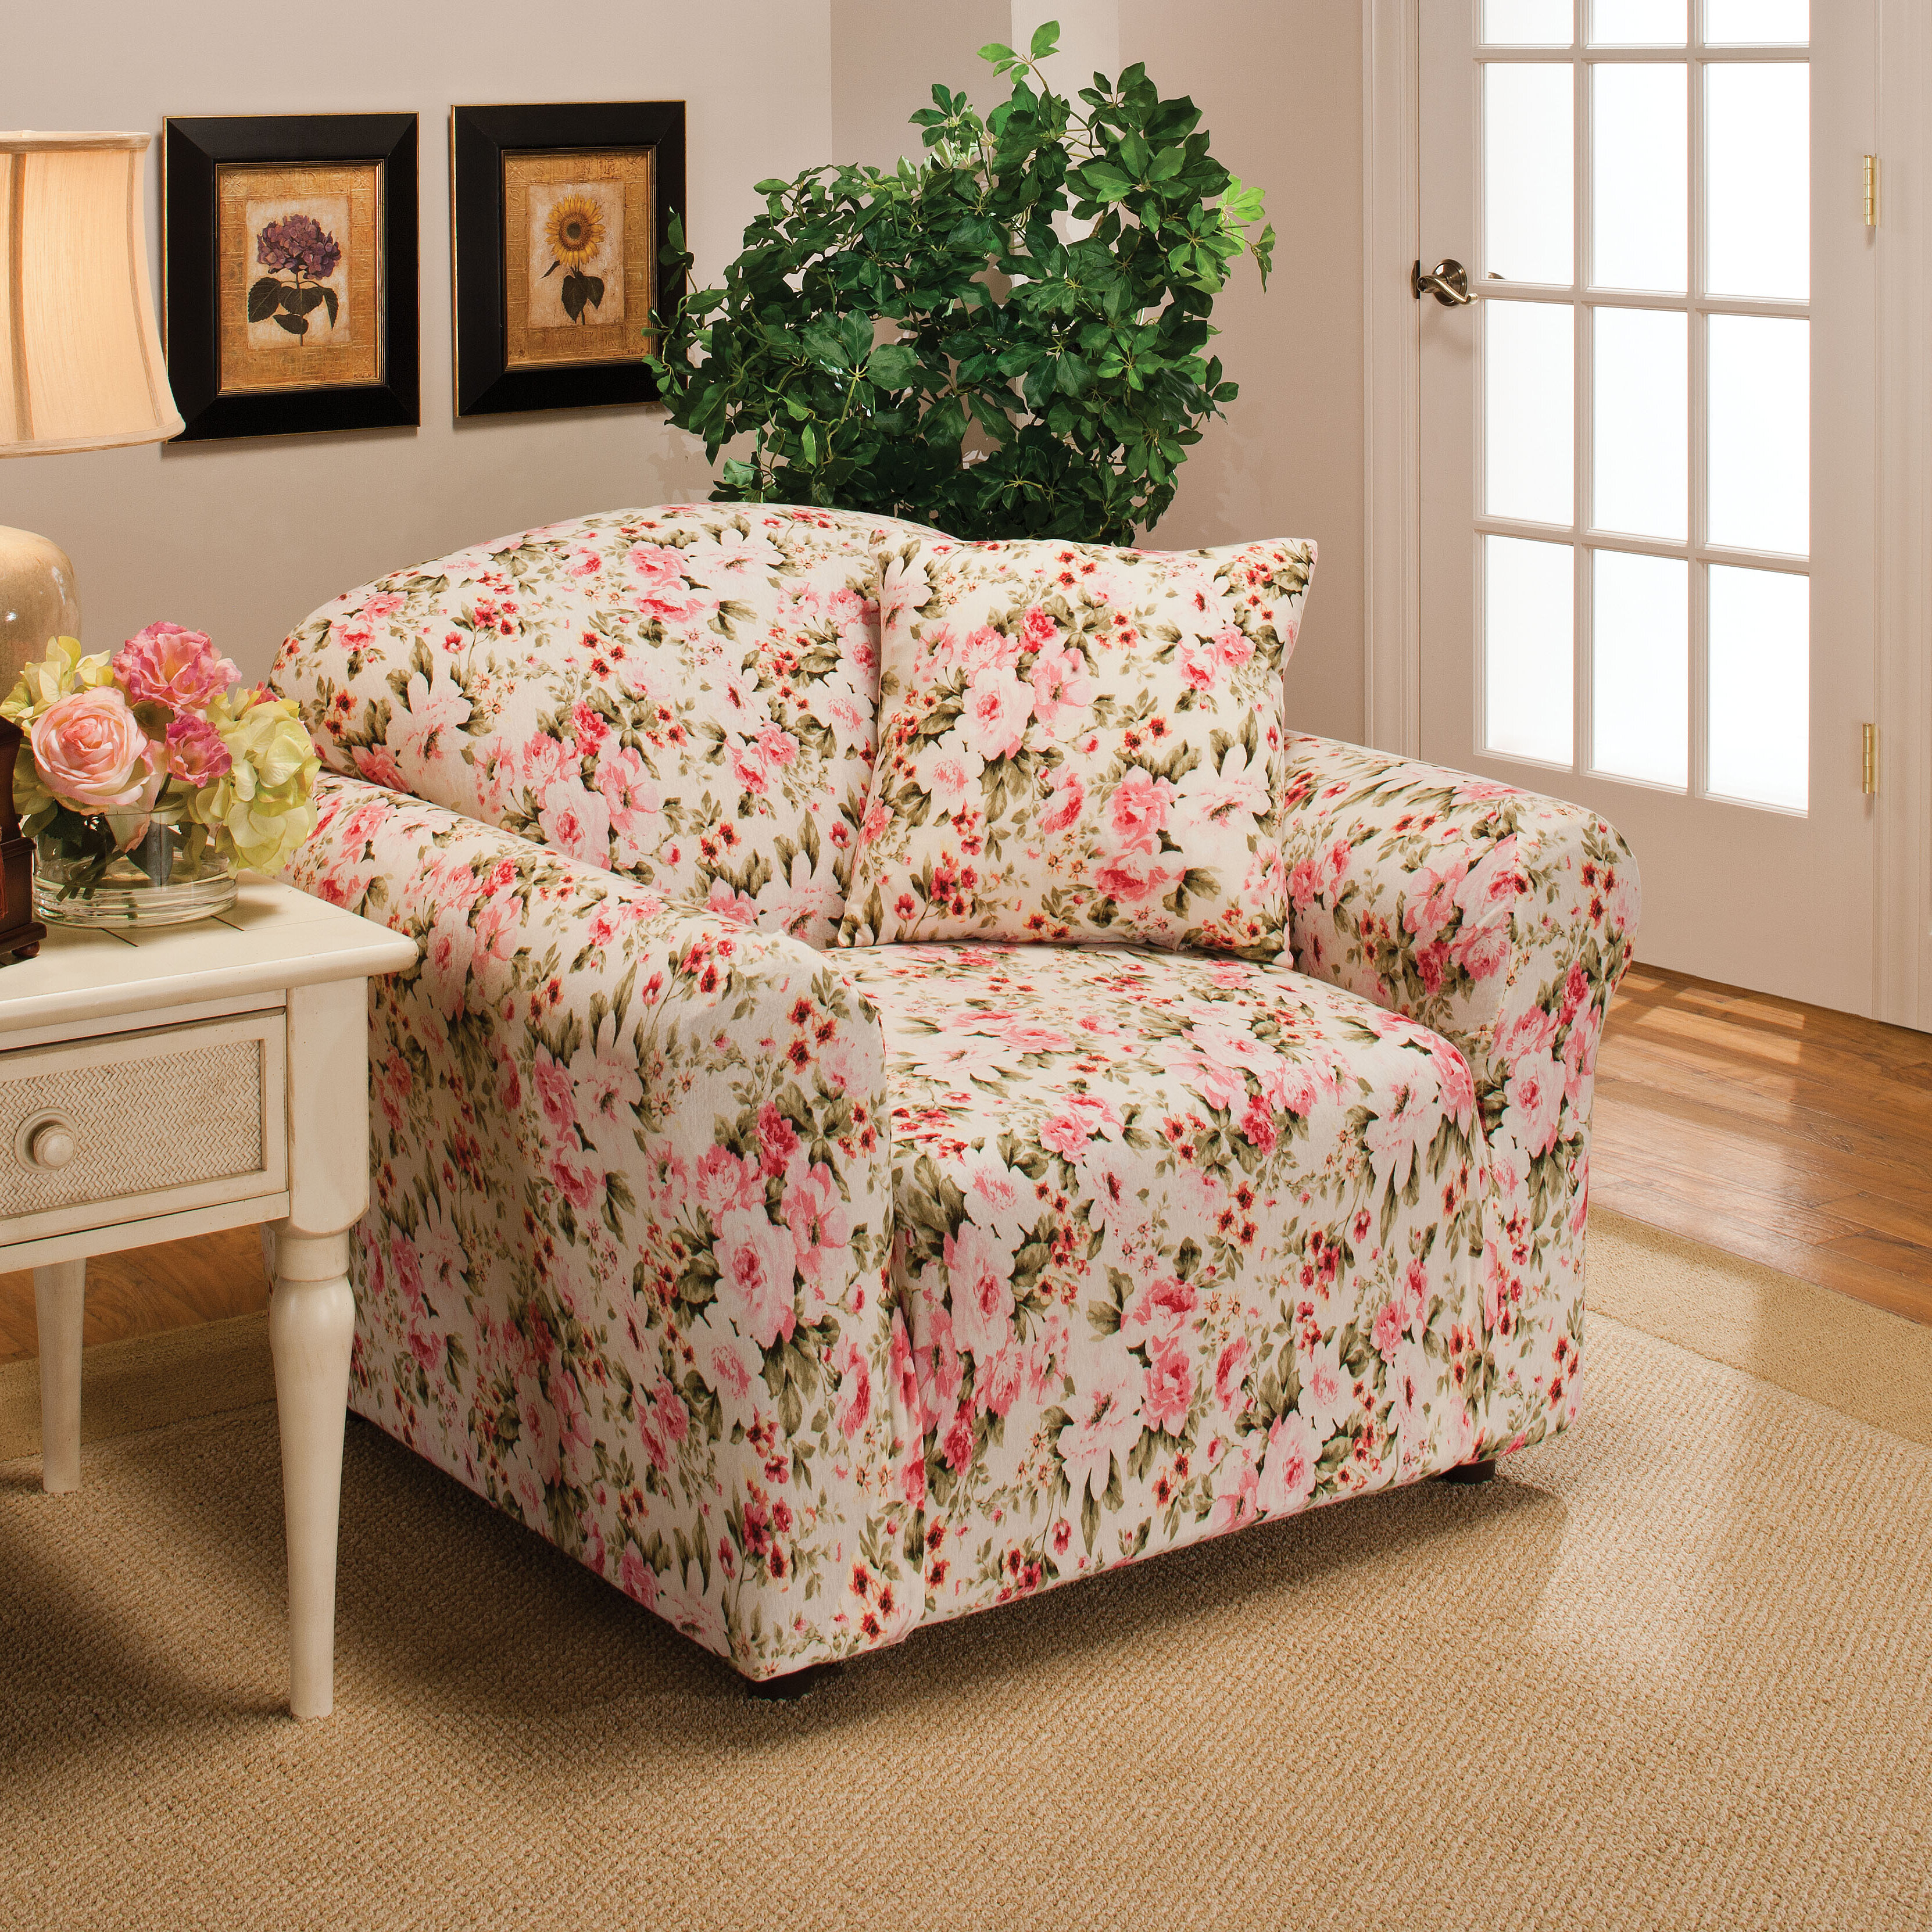 Floral Slipcovers For Sofas Coffee Tables Ideas